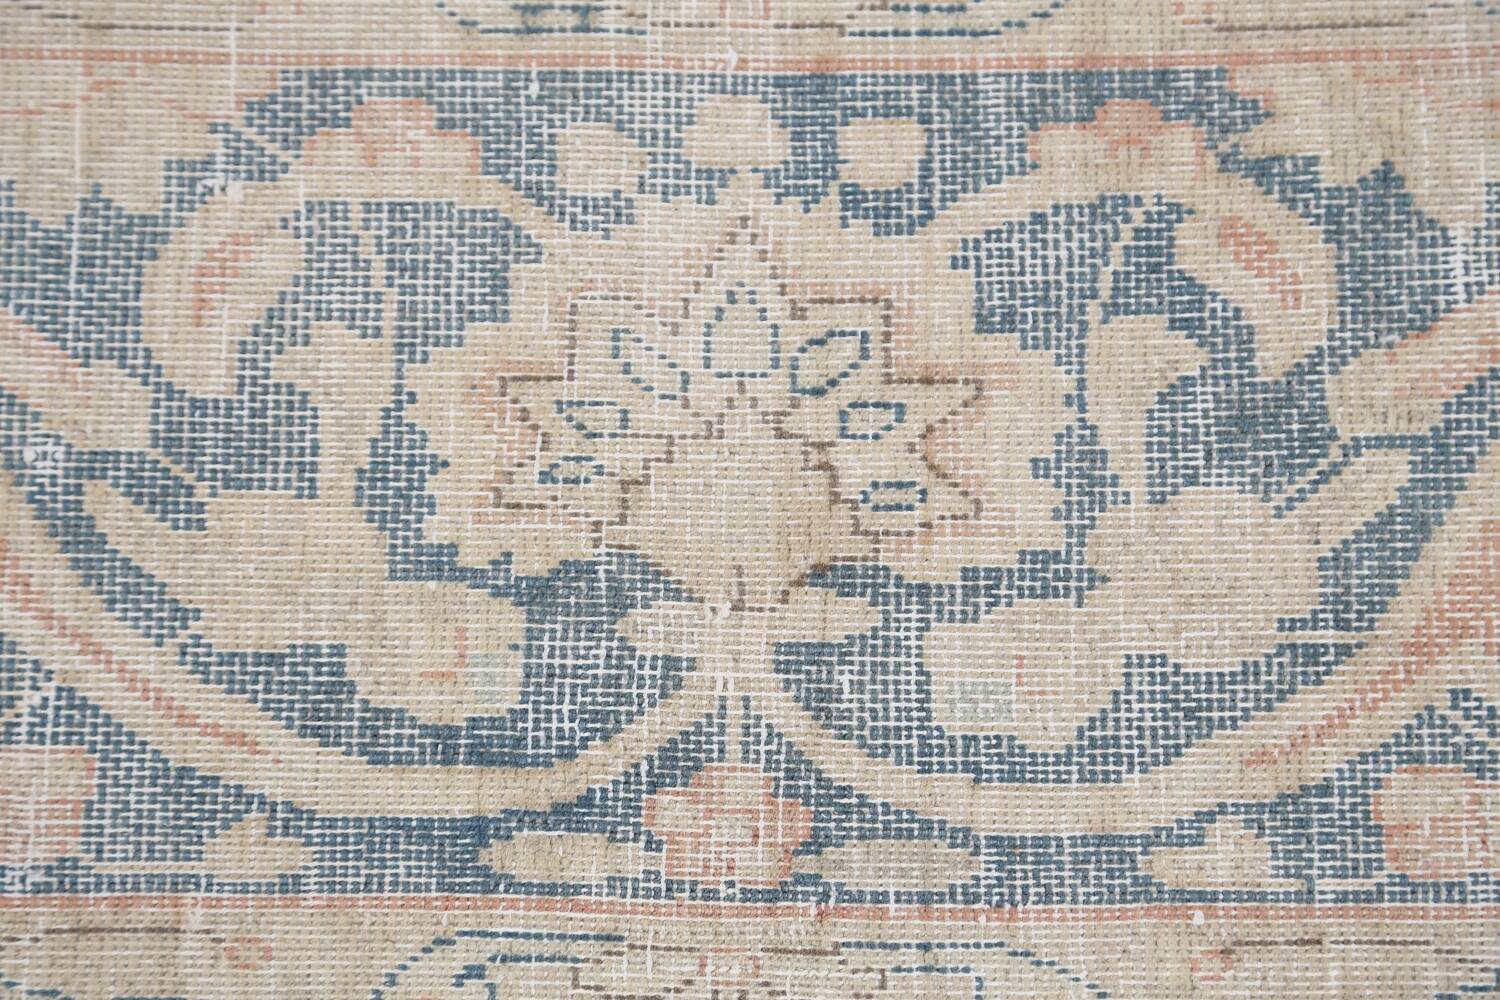 Antique Muted Kerman Persian Area Rug 10x13 image 9